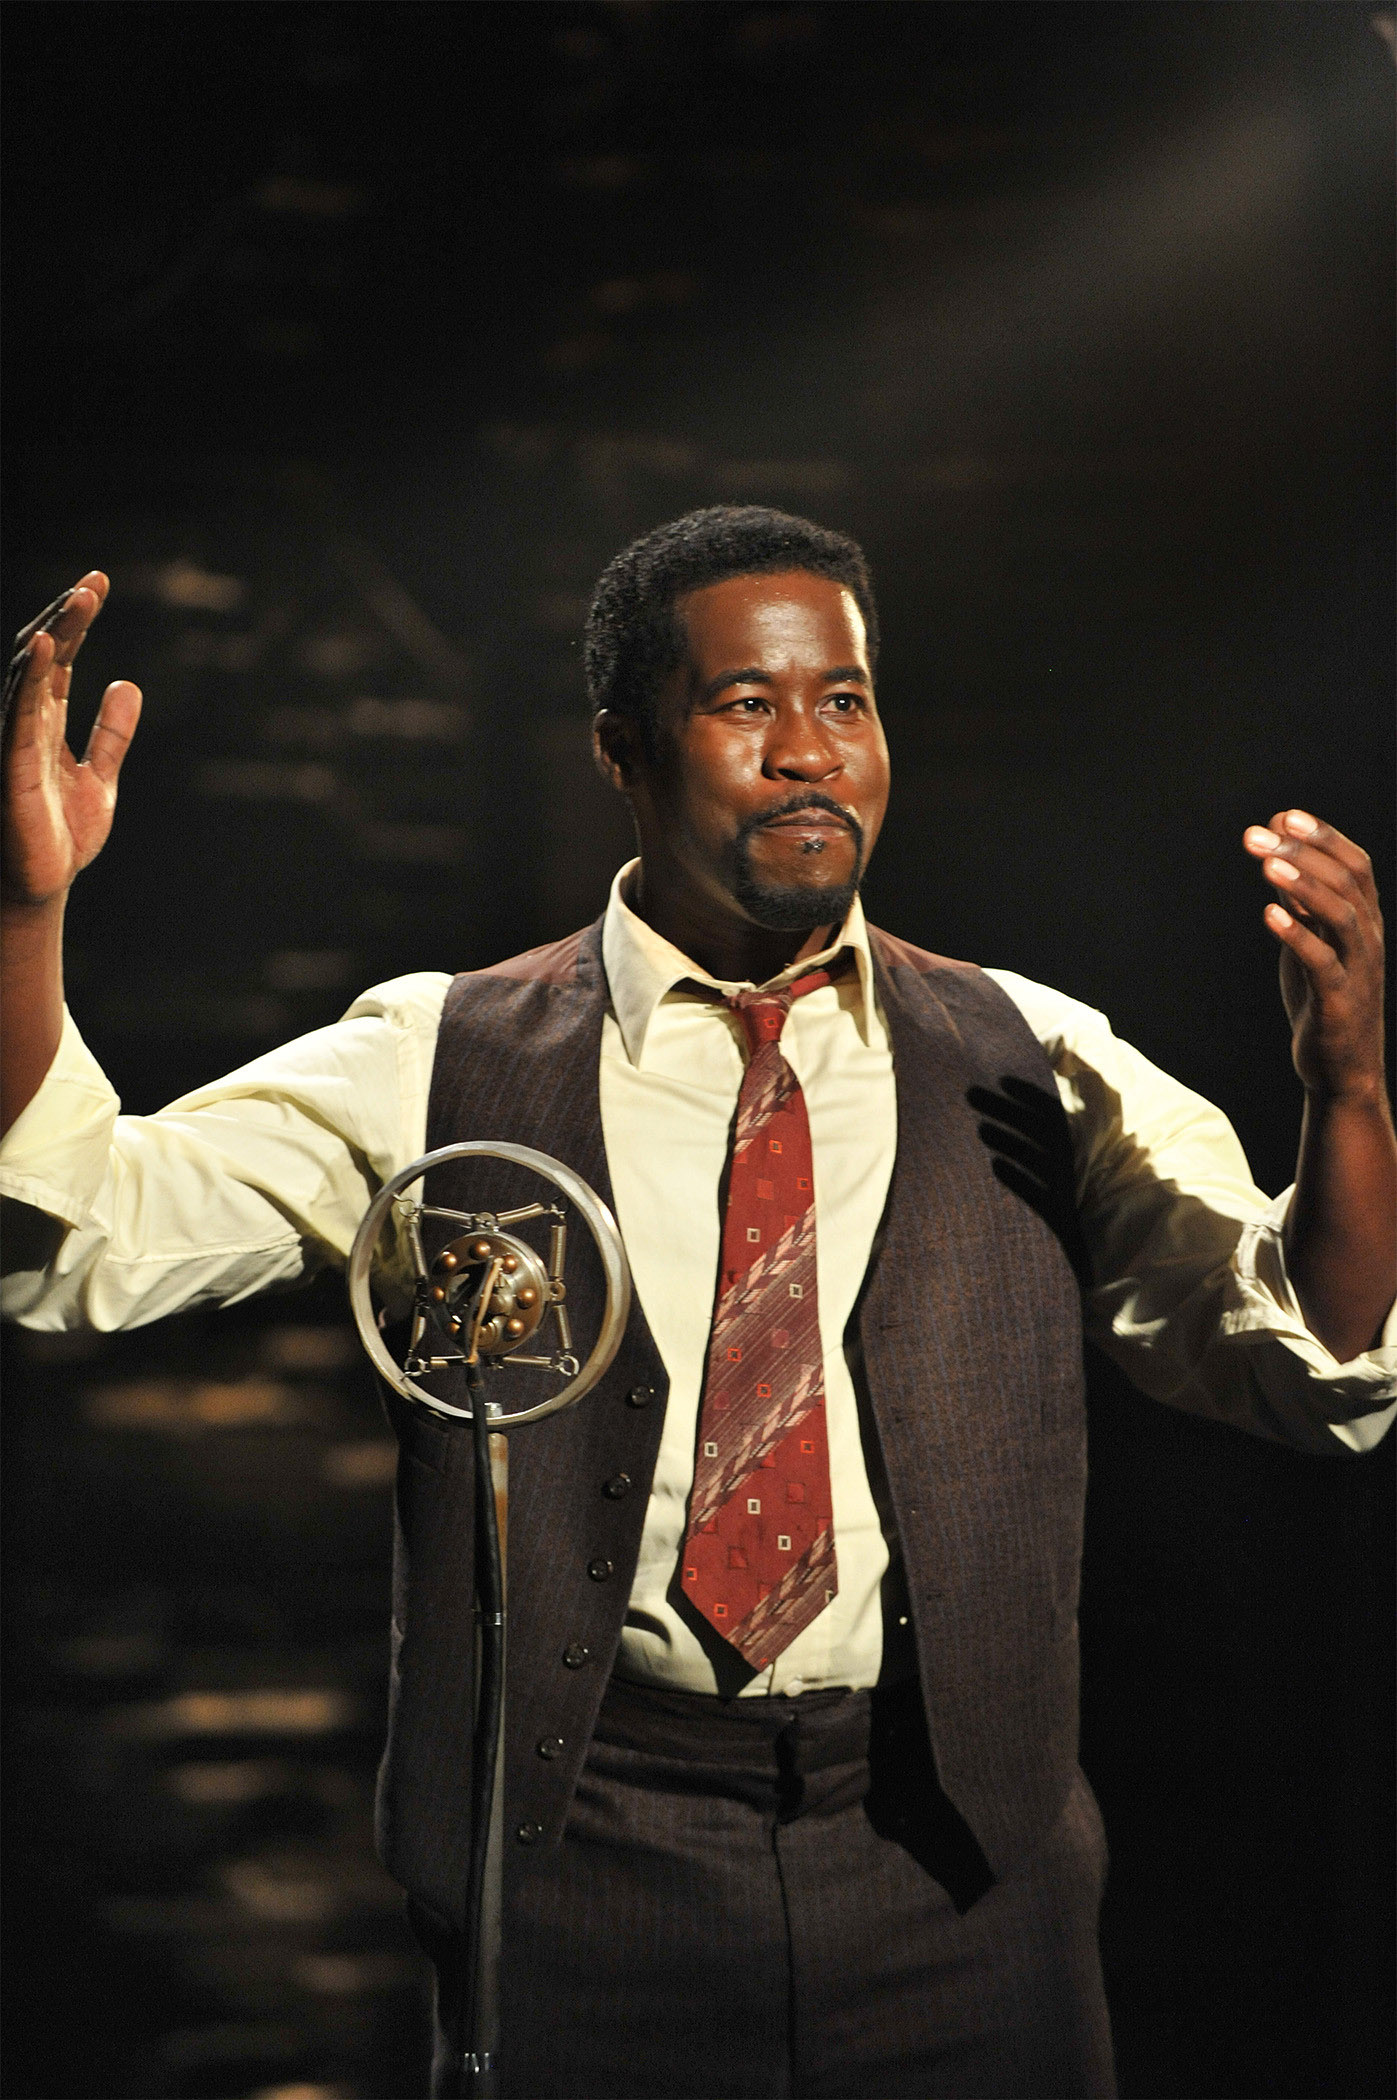 Caption: Daniel Beaty as Paul Robeson, Credit: Photo by Don Ipock, courtesy of Arena Stage